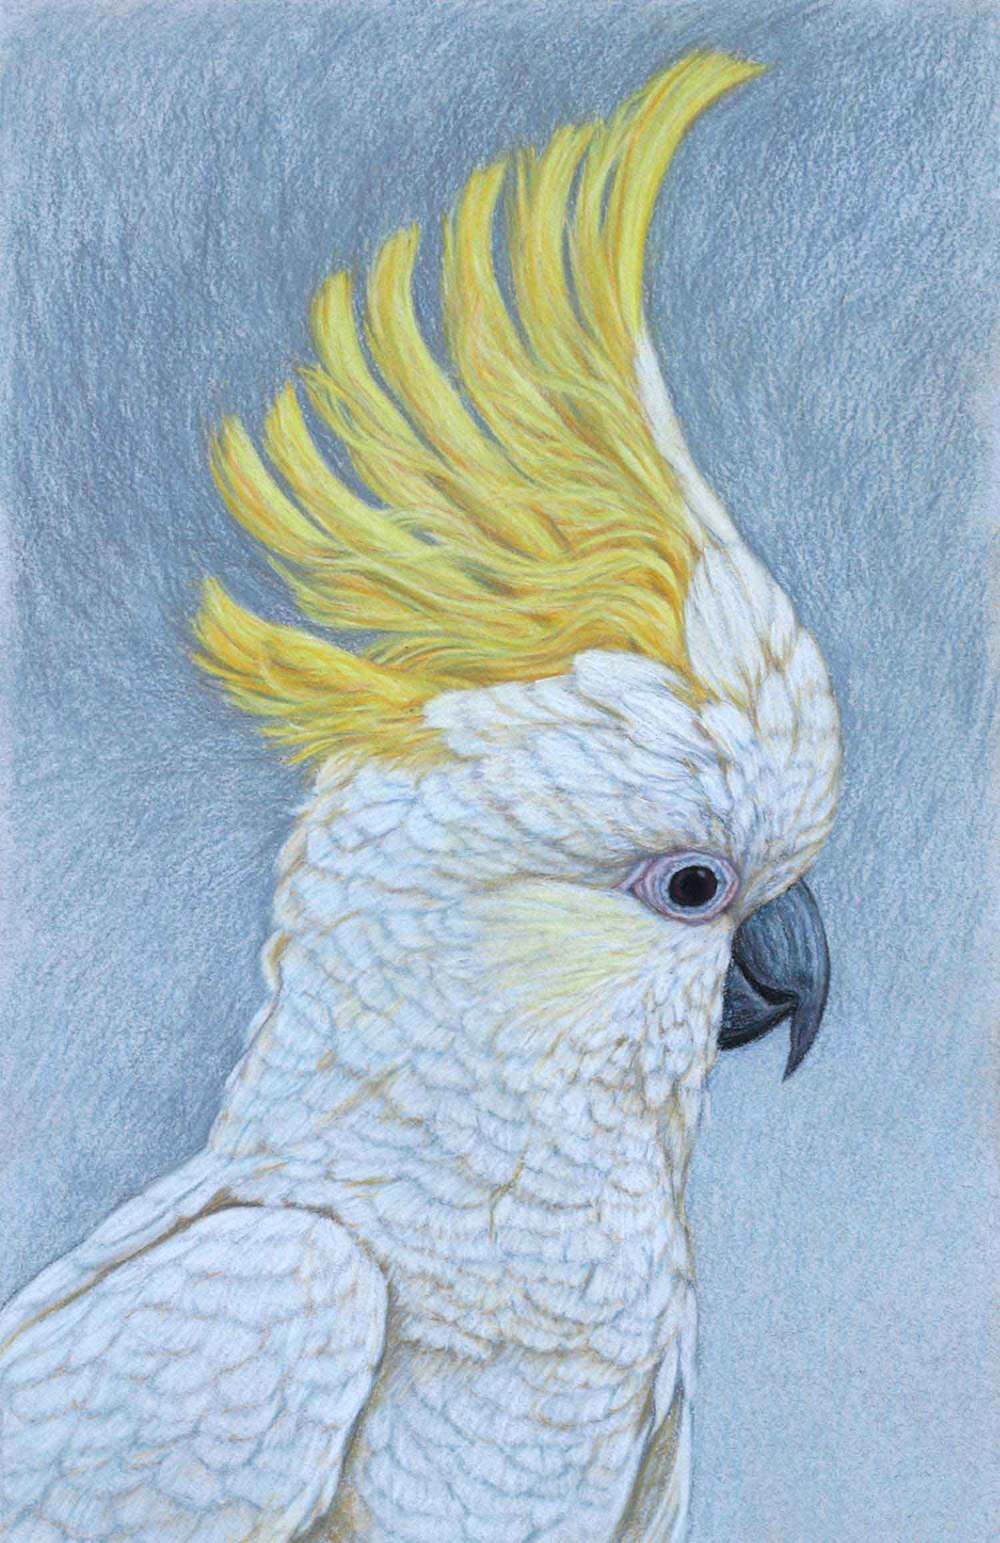 Sulphur Crested Cockatoo III     41.5 x 27 cm Pastel on handmade paper SOLD